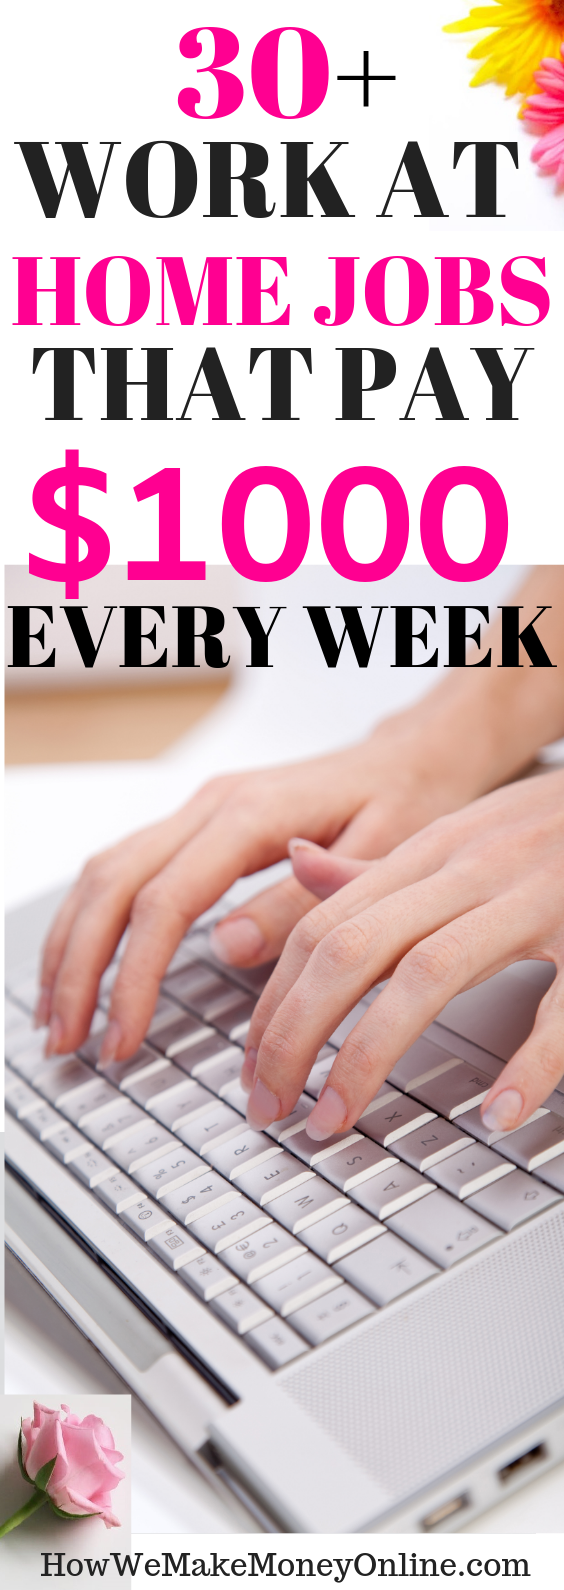 30+ work at home jobs that pay $1000 weekly. Get PAID every week. Looking for the BEST home jobs that pay weekly? In this post, I will SHOW you more than 30 work at home jobs that pay WEEKLY. Most of them are legitimate work from home jobs hiring now. No college degree needed. Also, you can make up to $24/hr or more. Apply for these high-paying work from home jobs and get paid EVERY WEEK. #workfromhome #workfromhomejobs #onlinejobs #momjobs #homejobs #onlinejobsfromhome #remotejobs #telecommute #virtualjobs #makemoney #sidehustles #diy